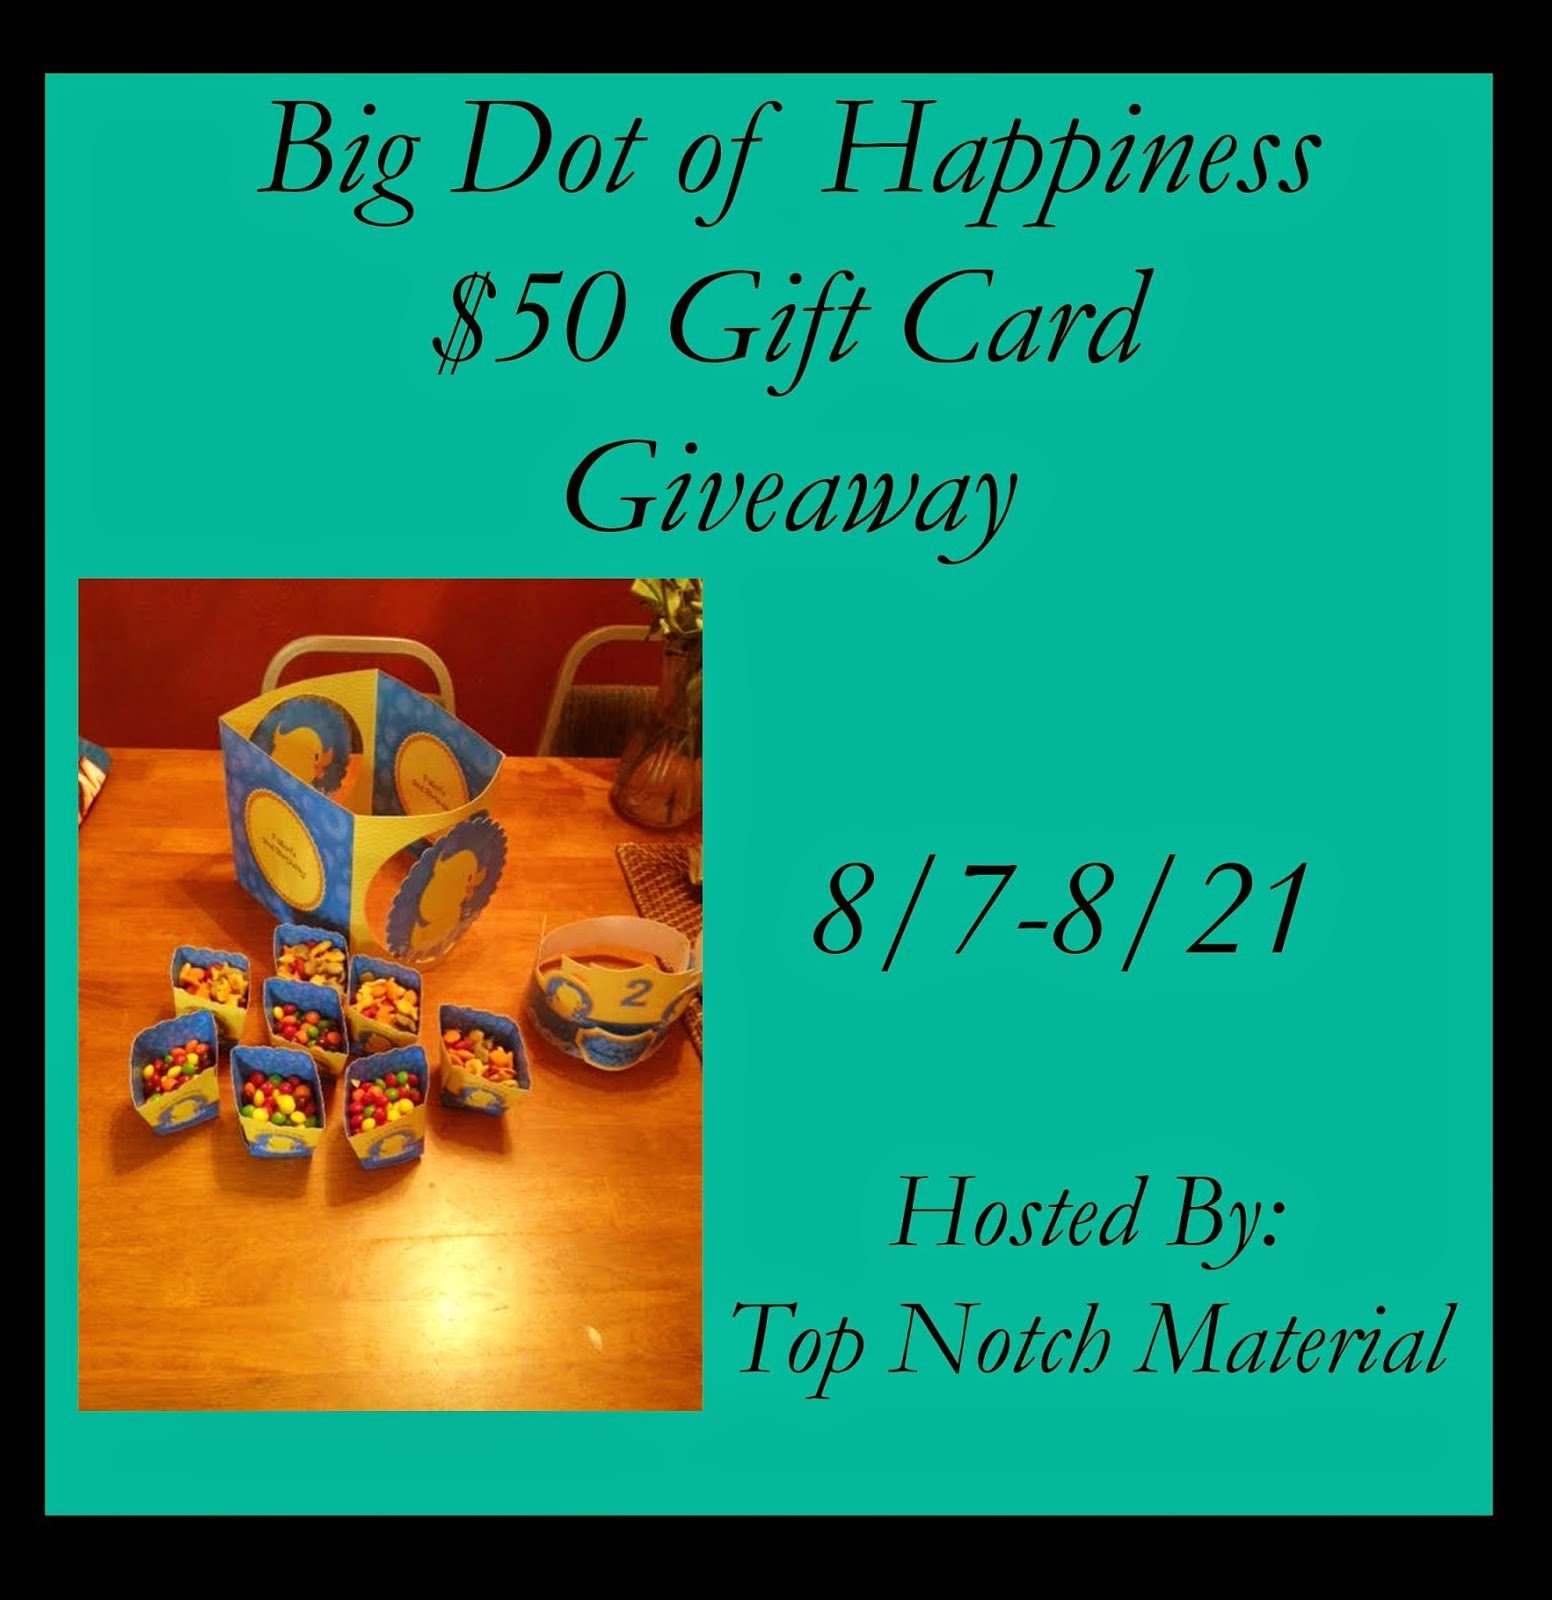 Big Dot of Happiness Giveaway